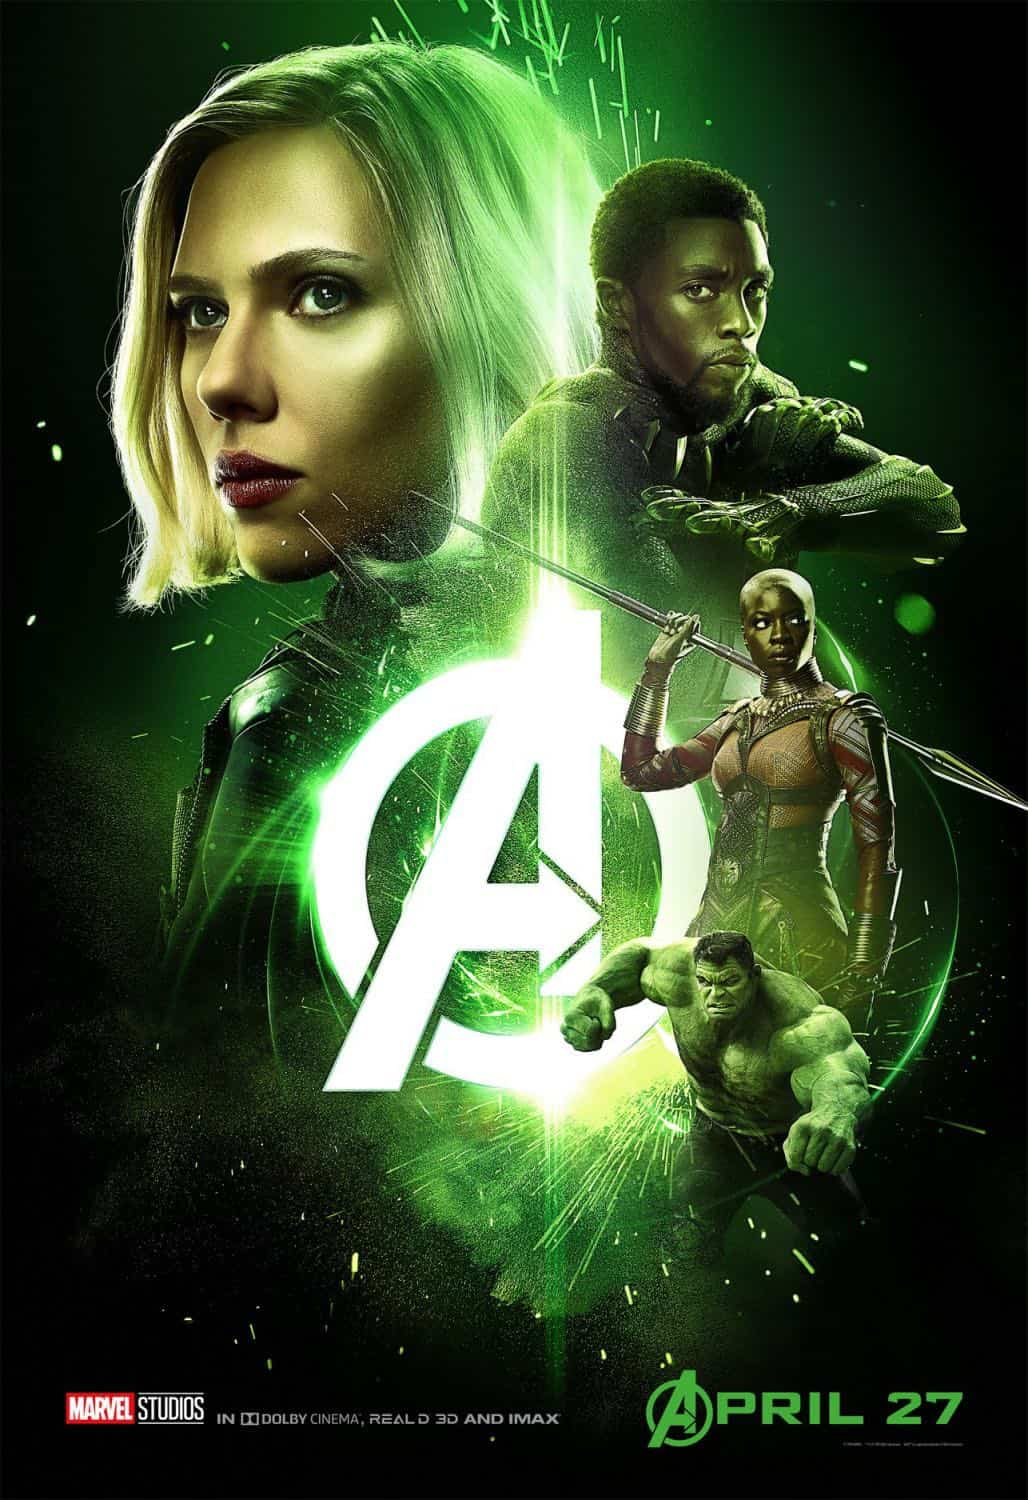 New AVENGERS INFINITY WAR Posters 2